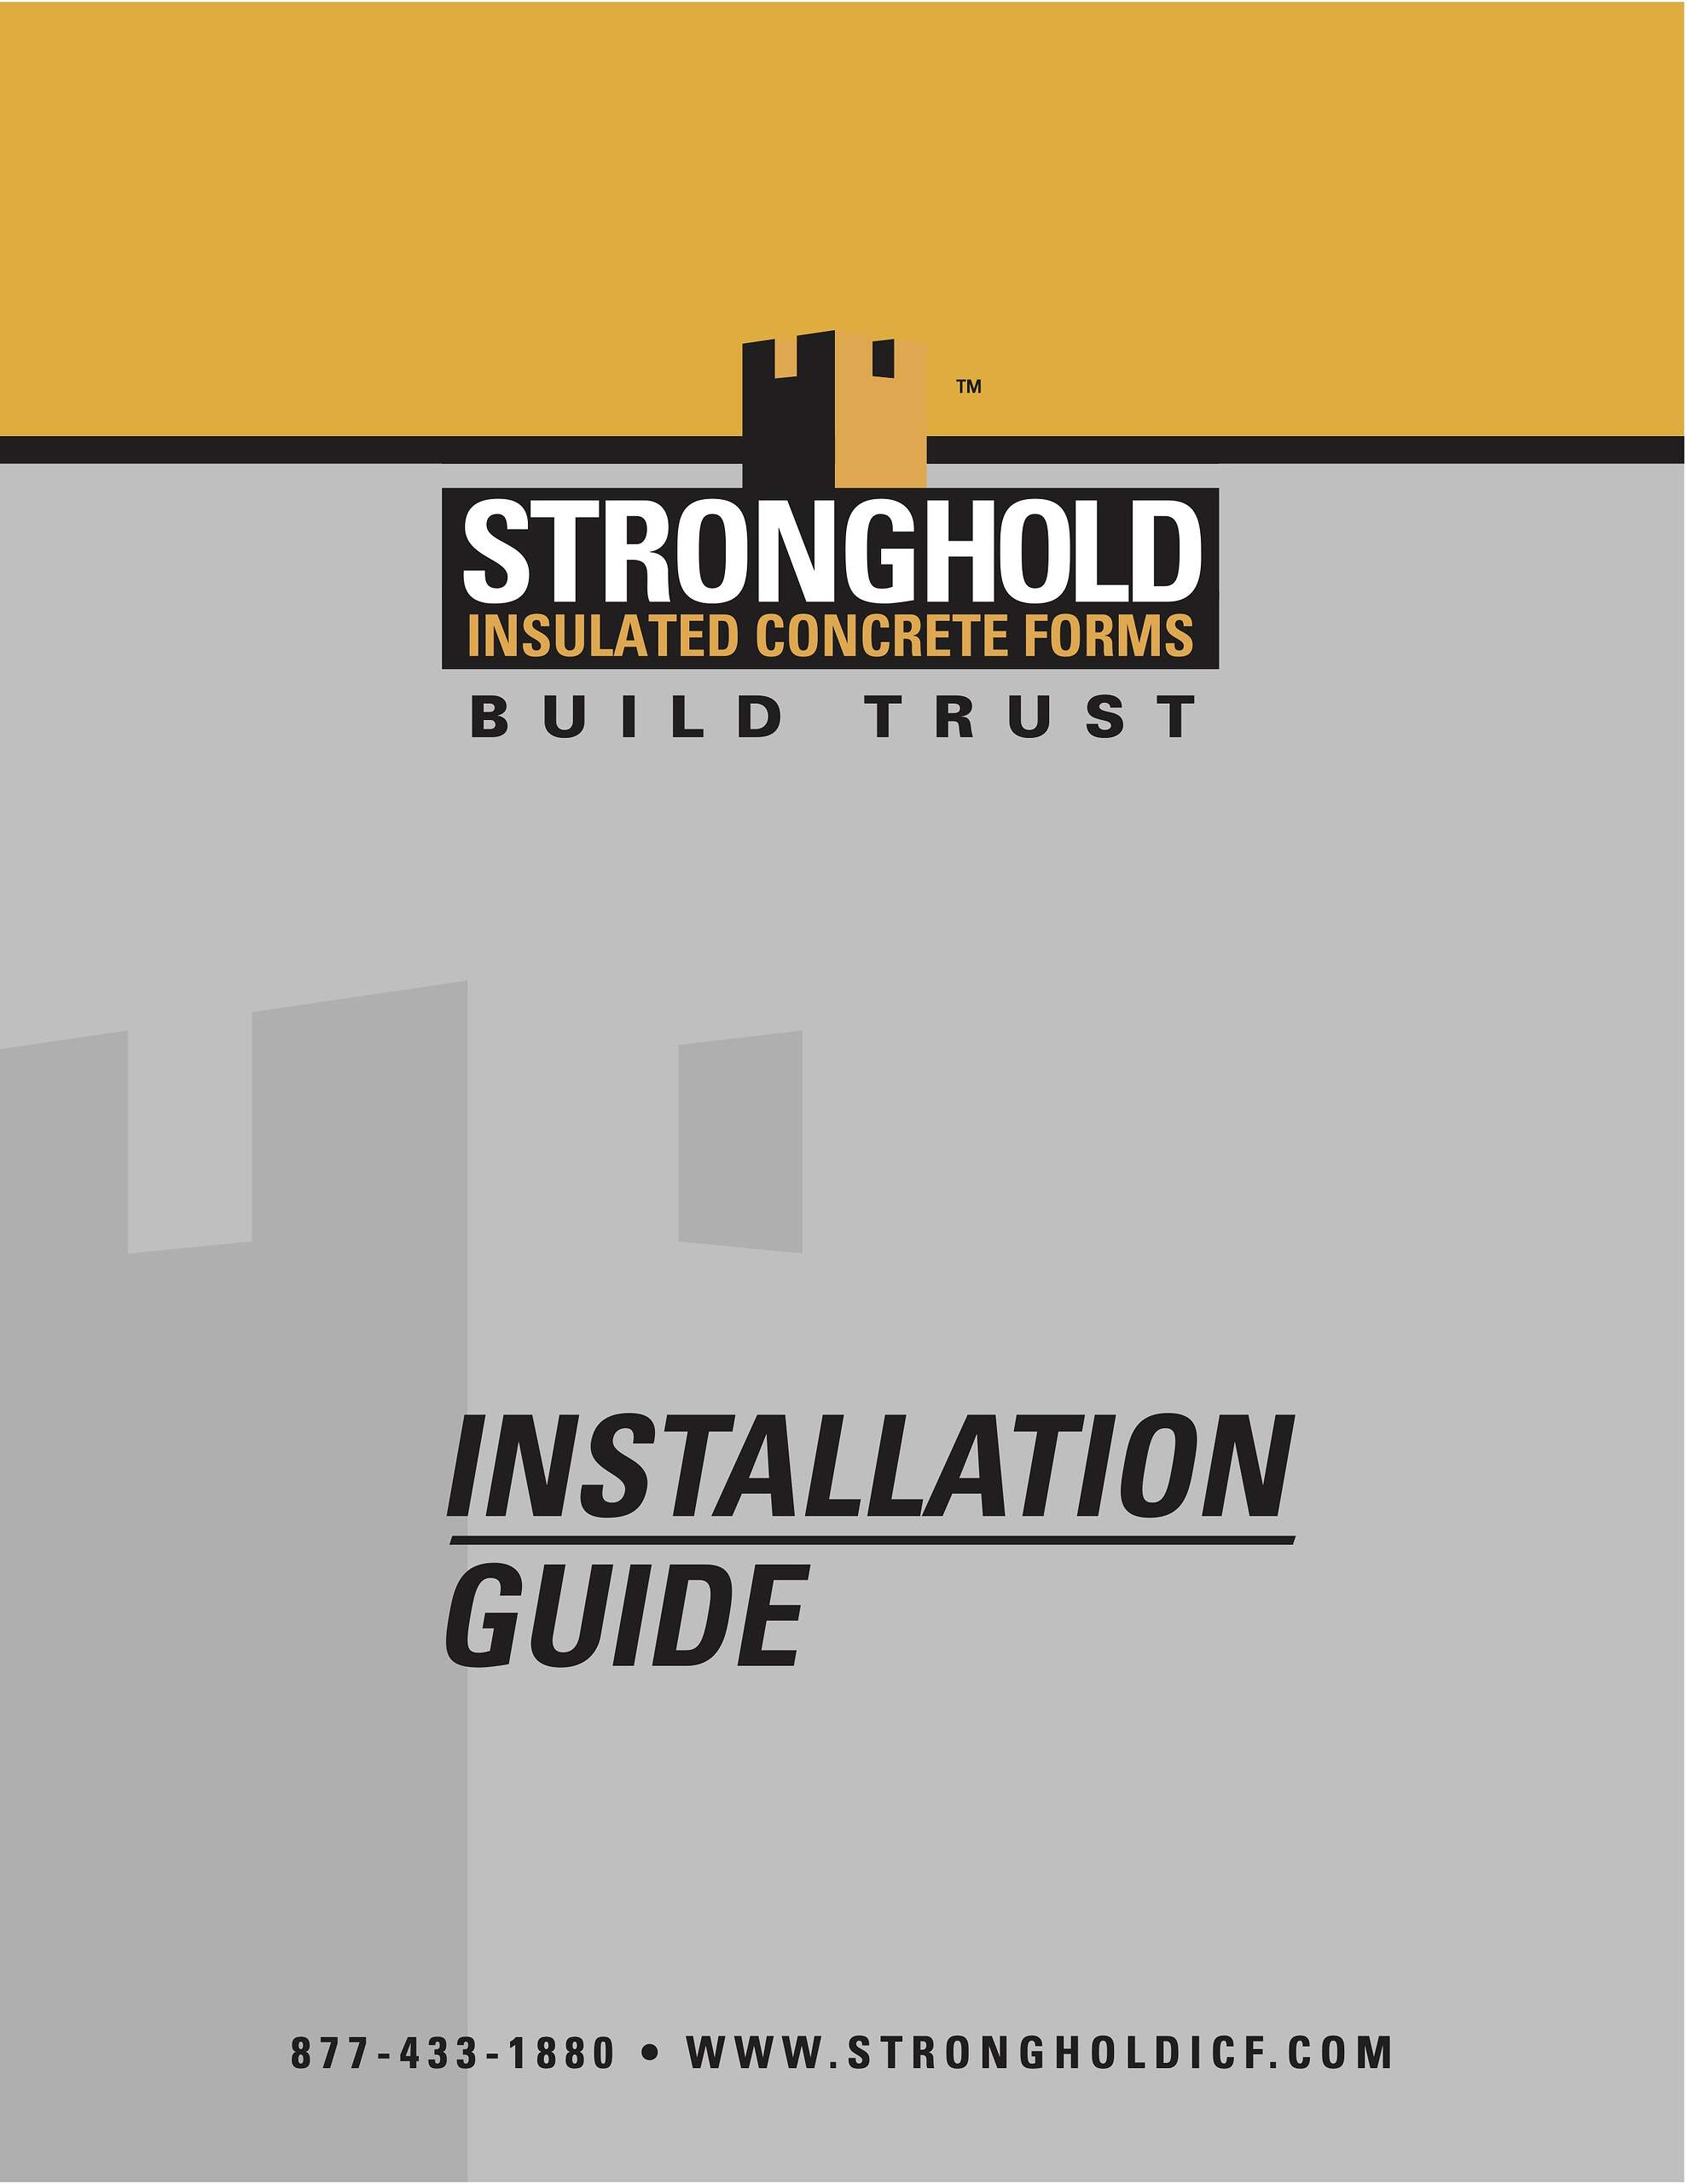 stronghold installation guide cover